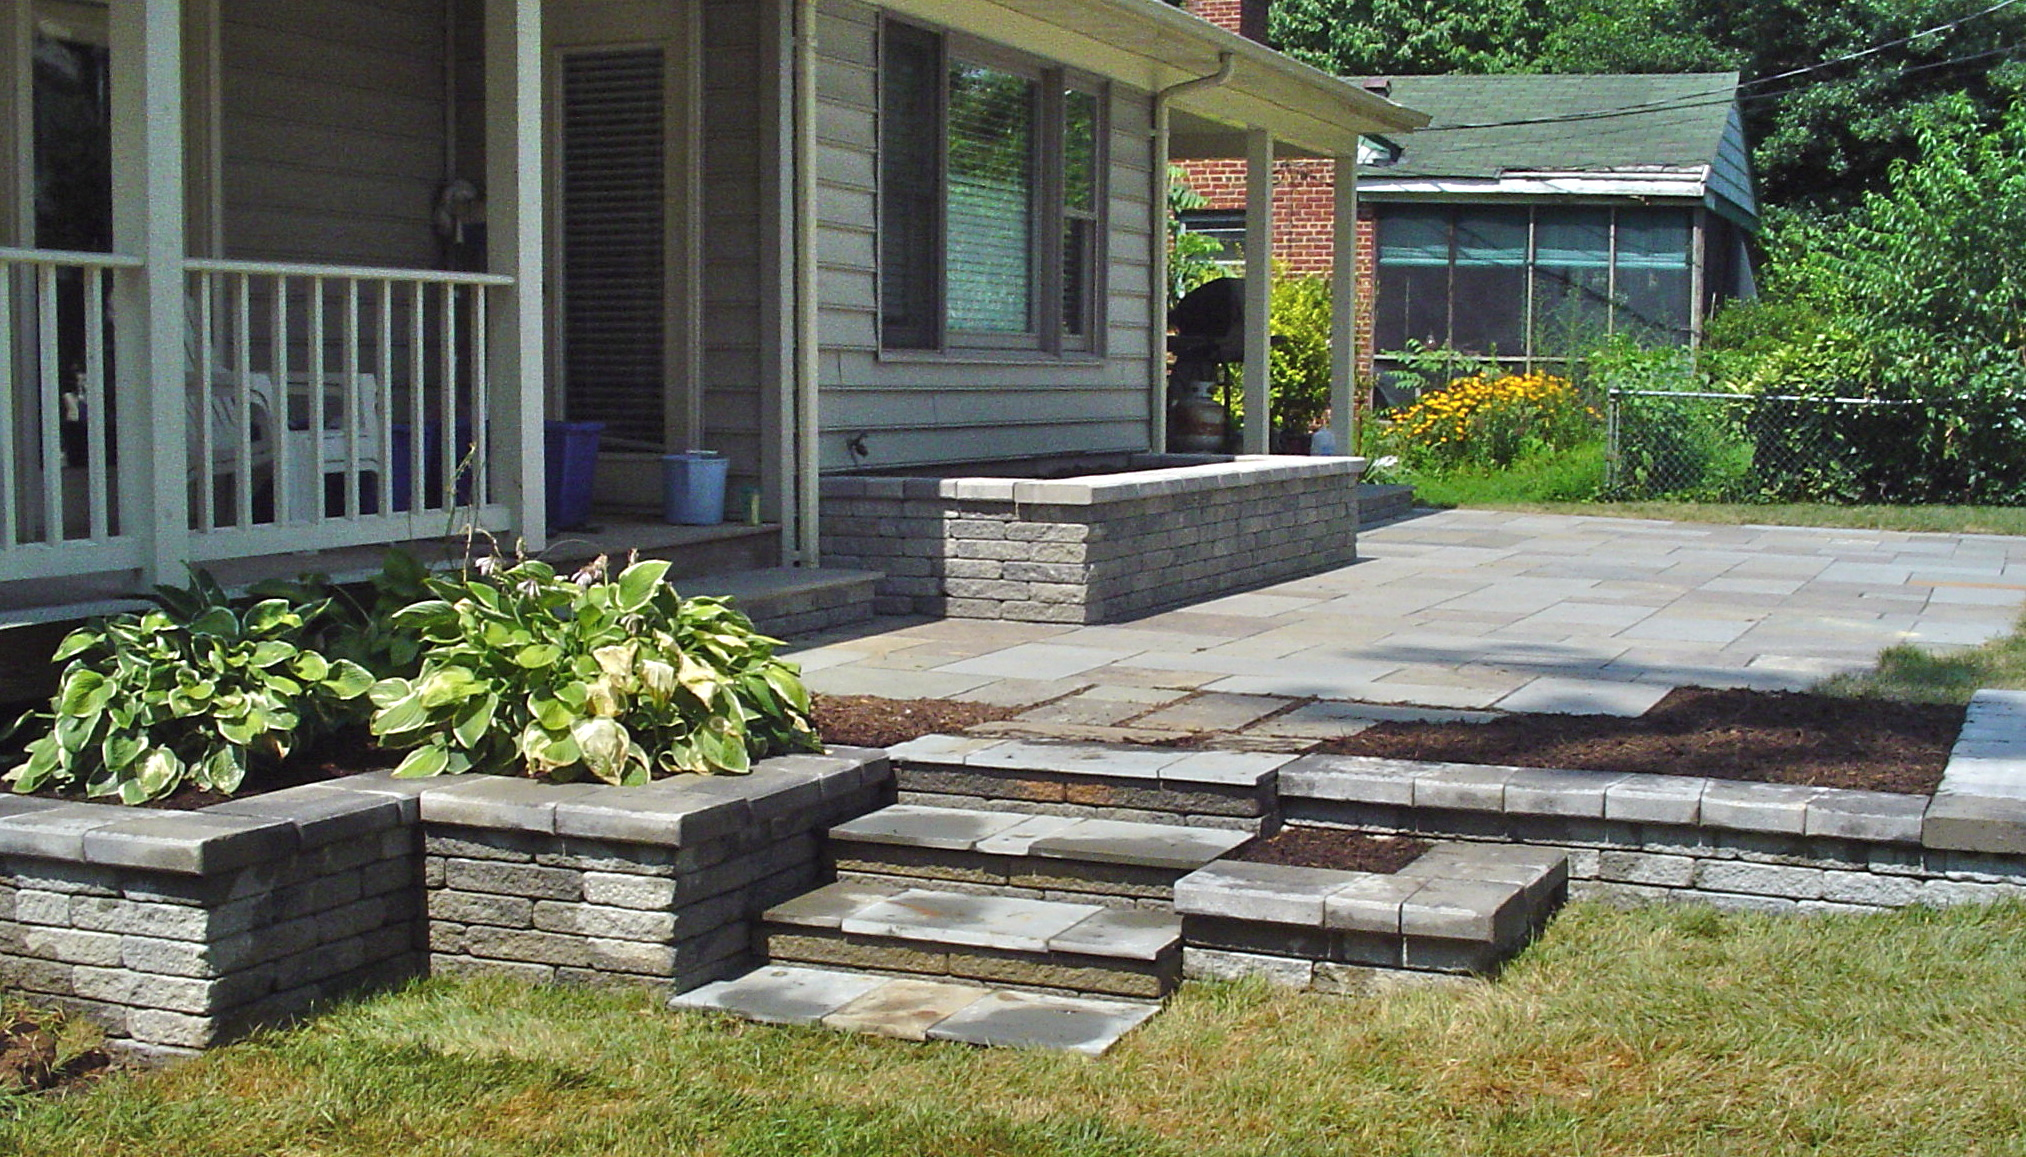 Tiered planters and patio